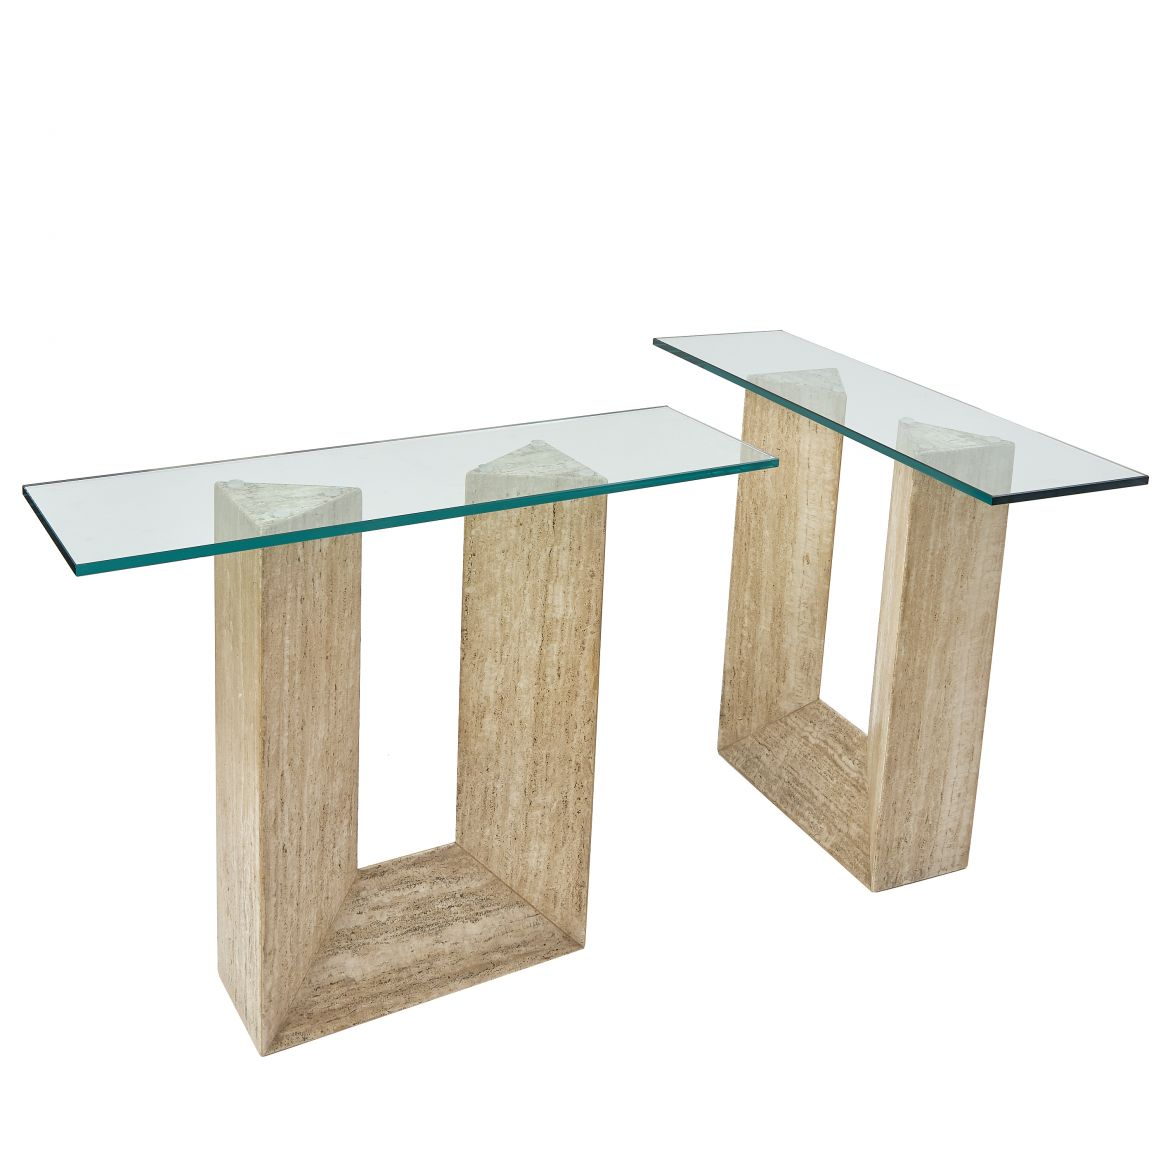 Pair Italian Modernist Travertine Tables